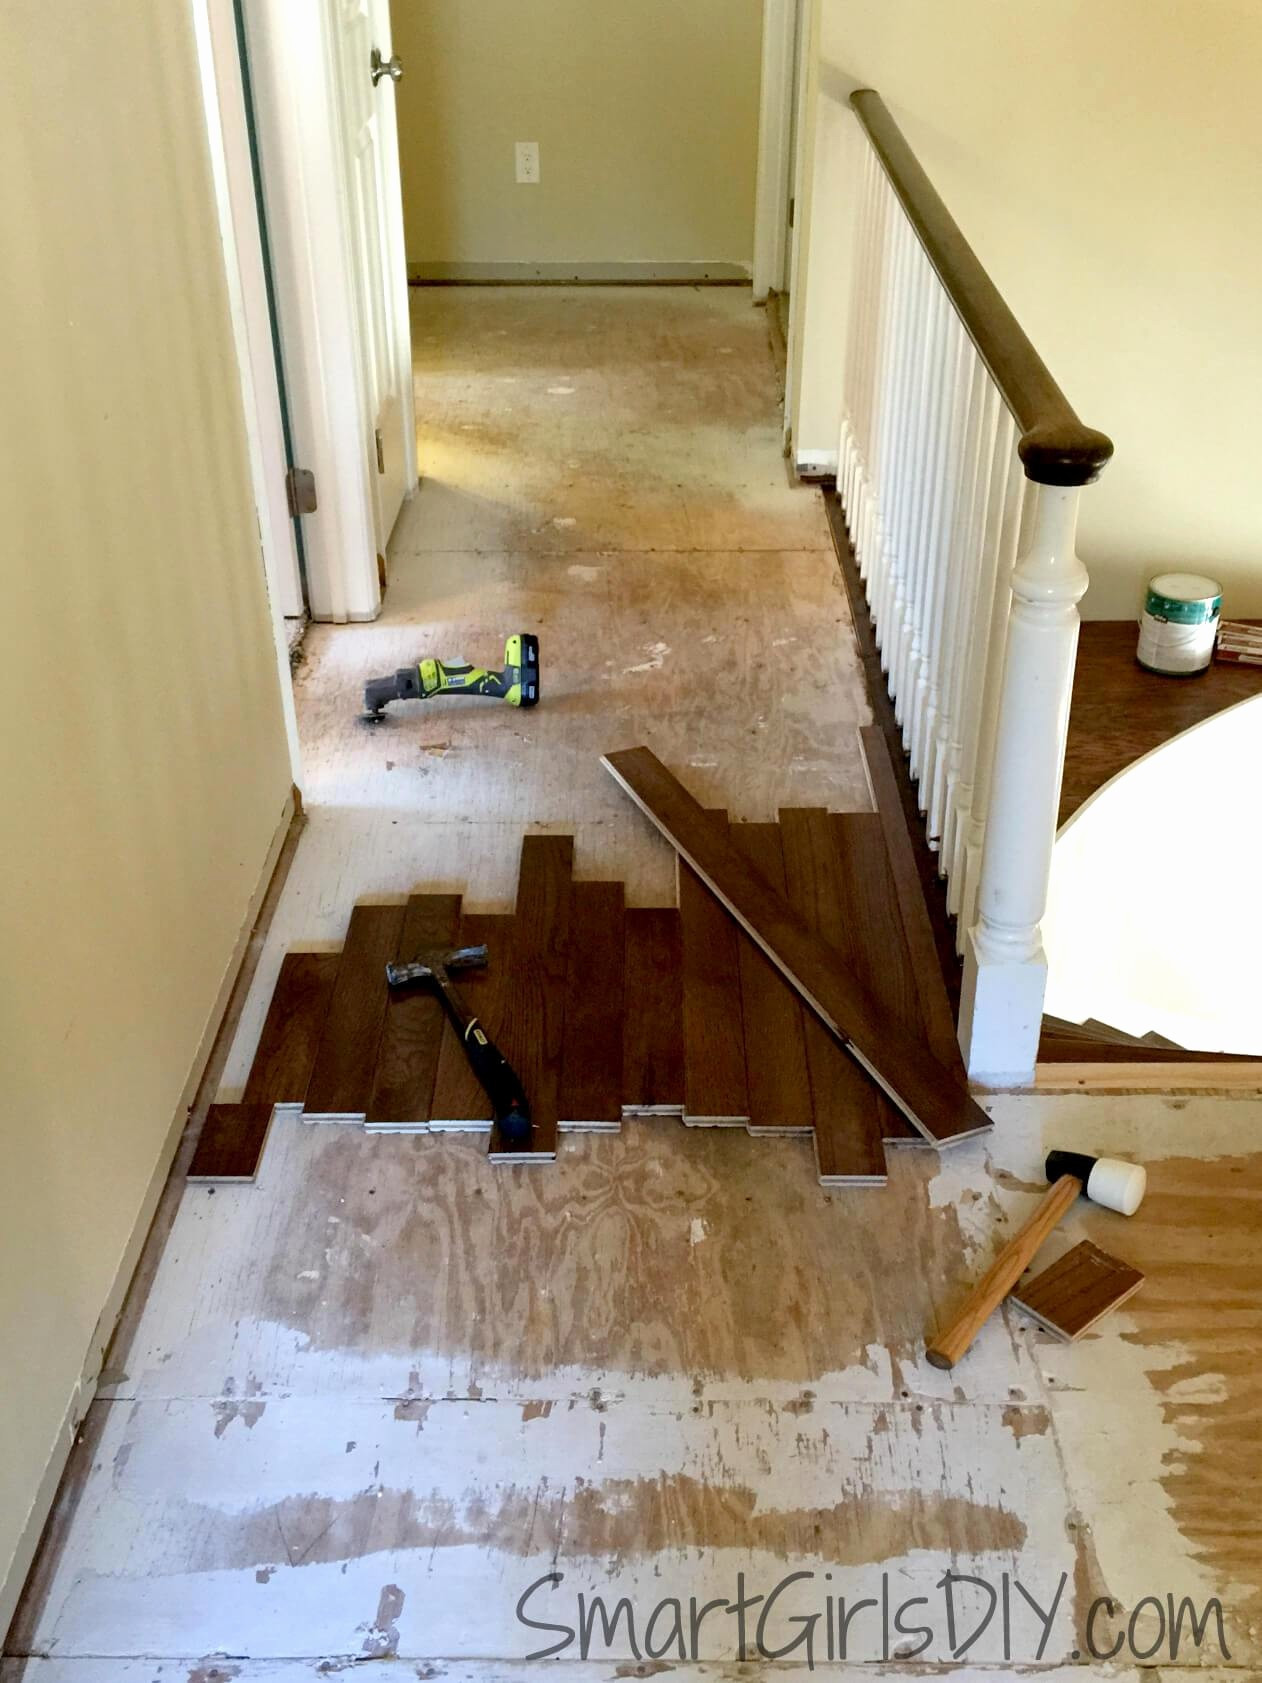 how much does it cost to have hardwood floors refinished of 19 unique how much does it cost to refinish hardwood floors gallery for how much does it cost to refinish hardwood floors new 50 fresh estimated cost installing hardwood